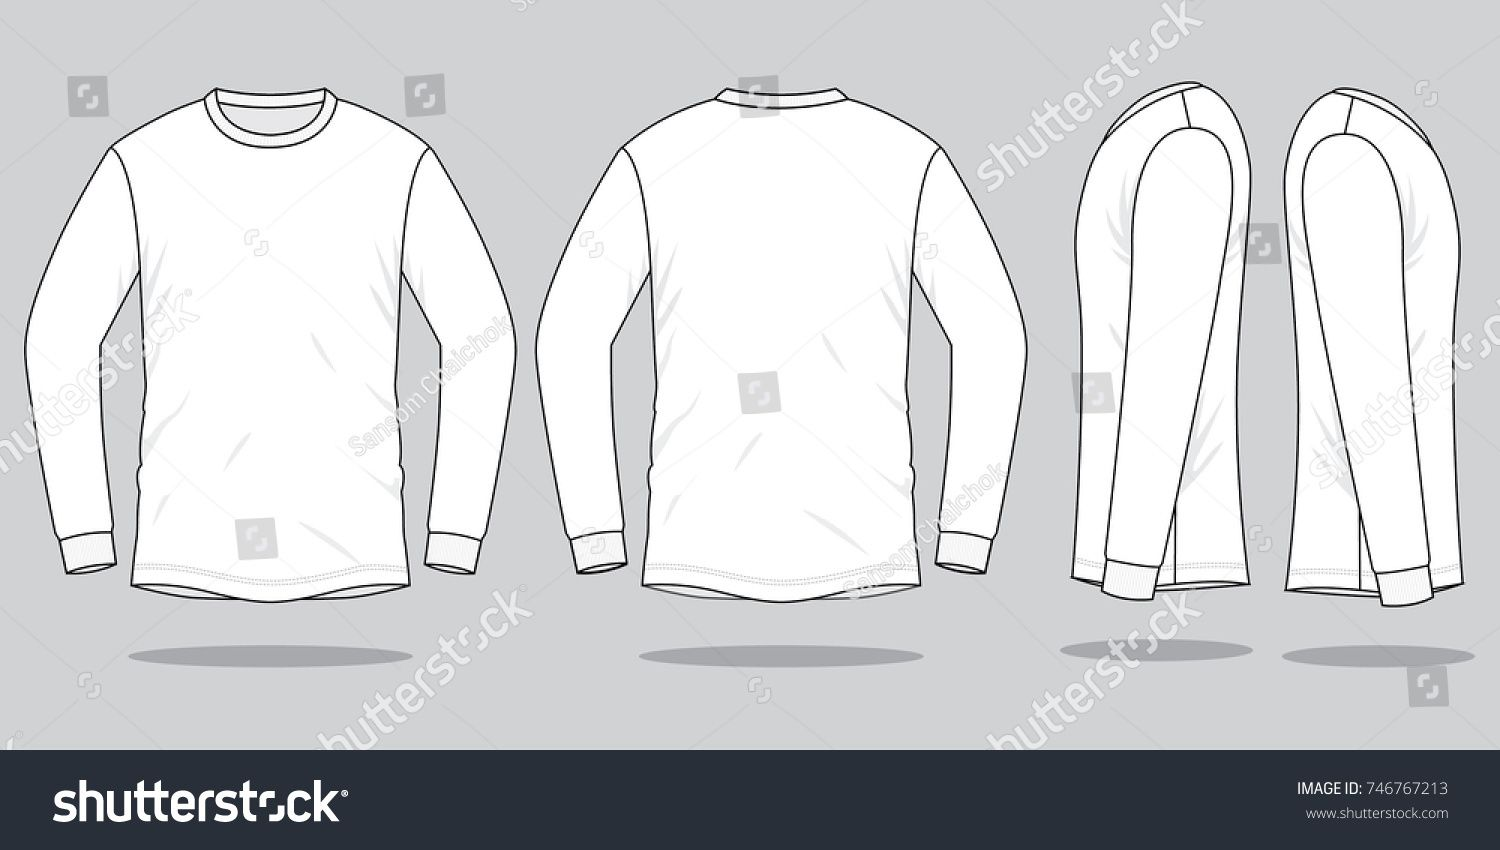 Download White Long Sleeve T Shirt For Template Front Back And Side Views Sleeve Shirt White Long Shirt Sketch White Long Sleeve Tshirt Shirt Template